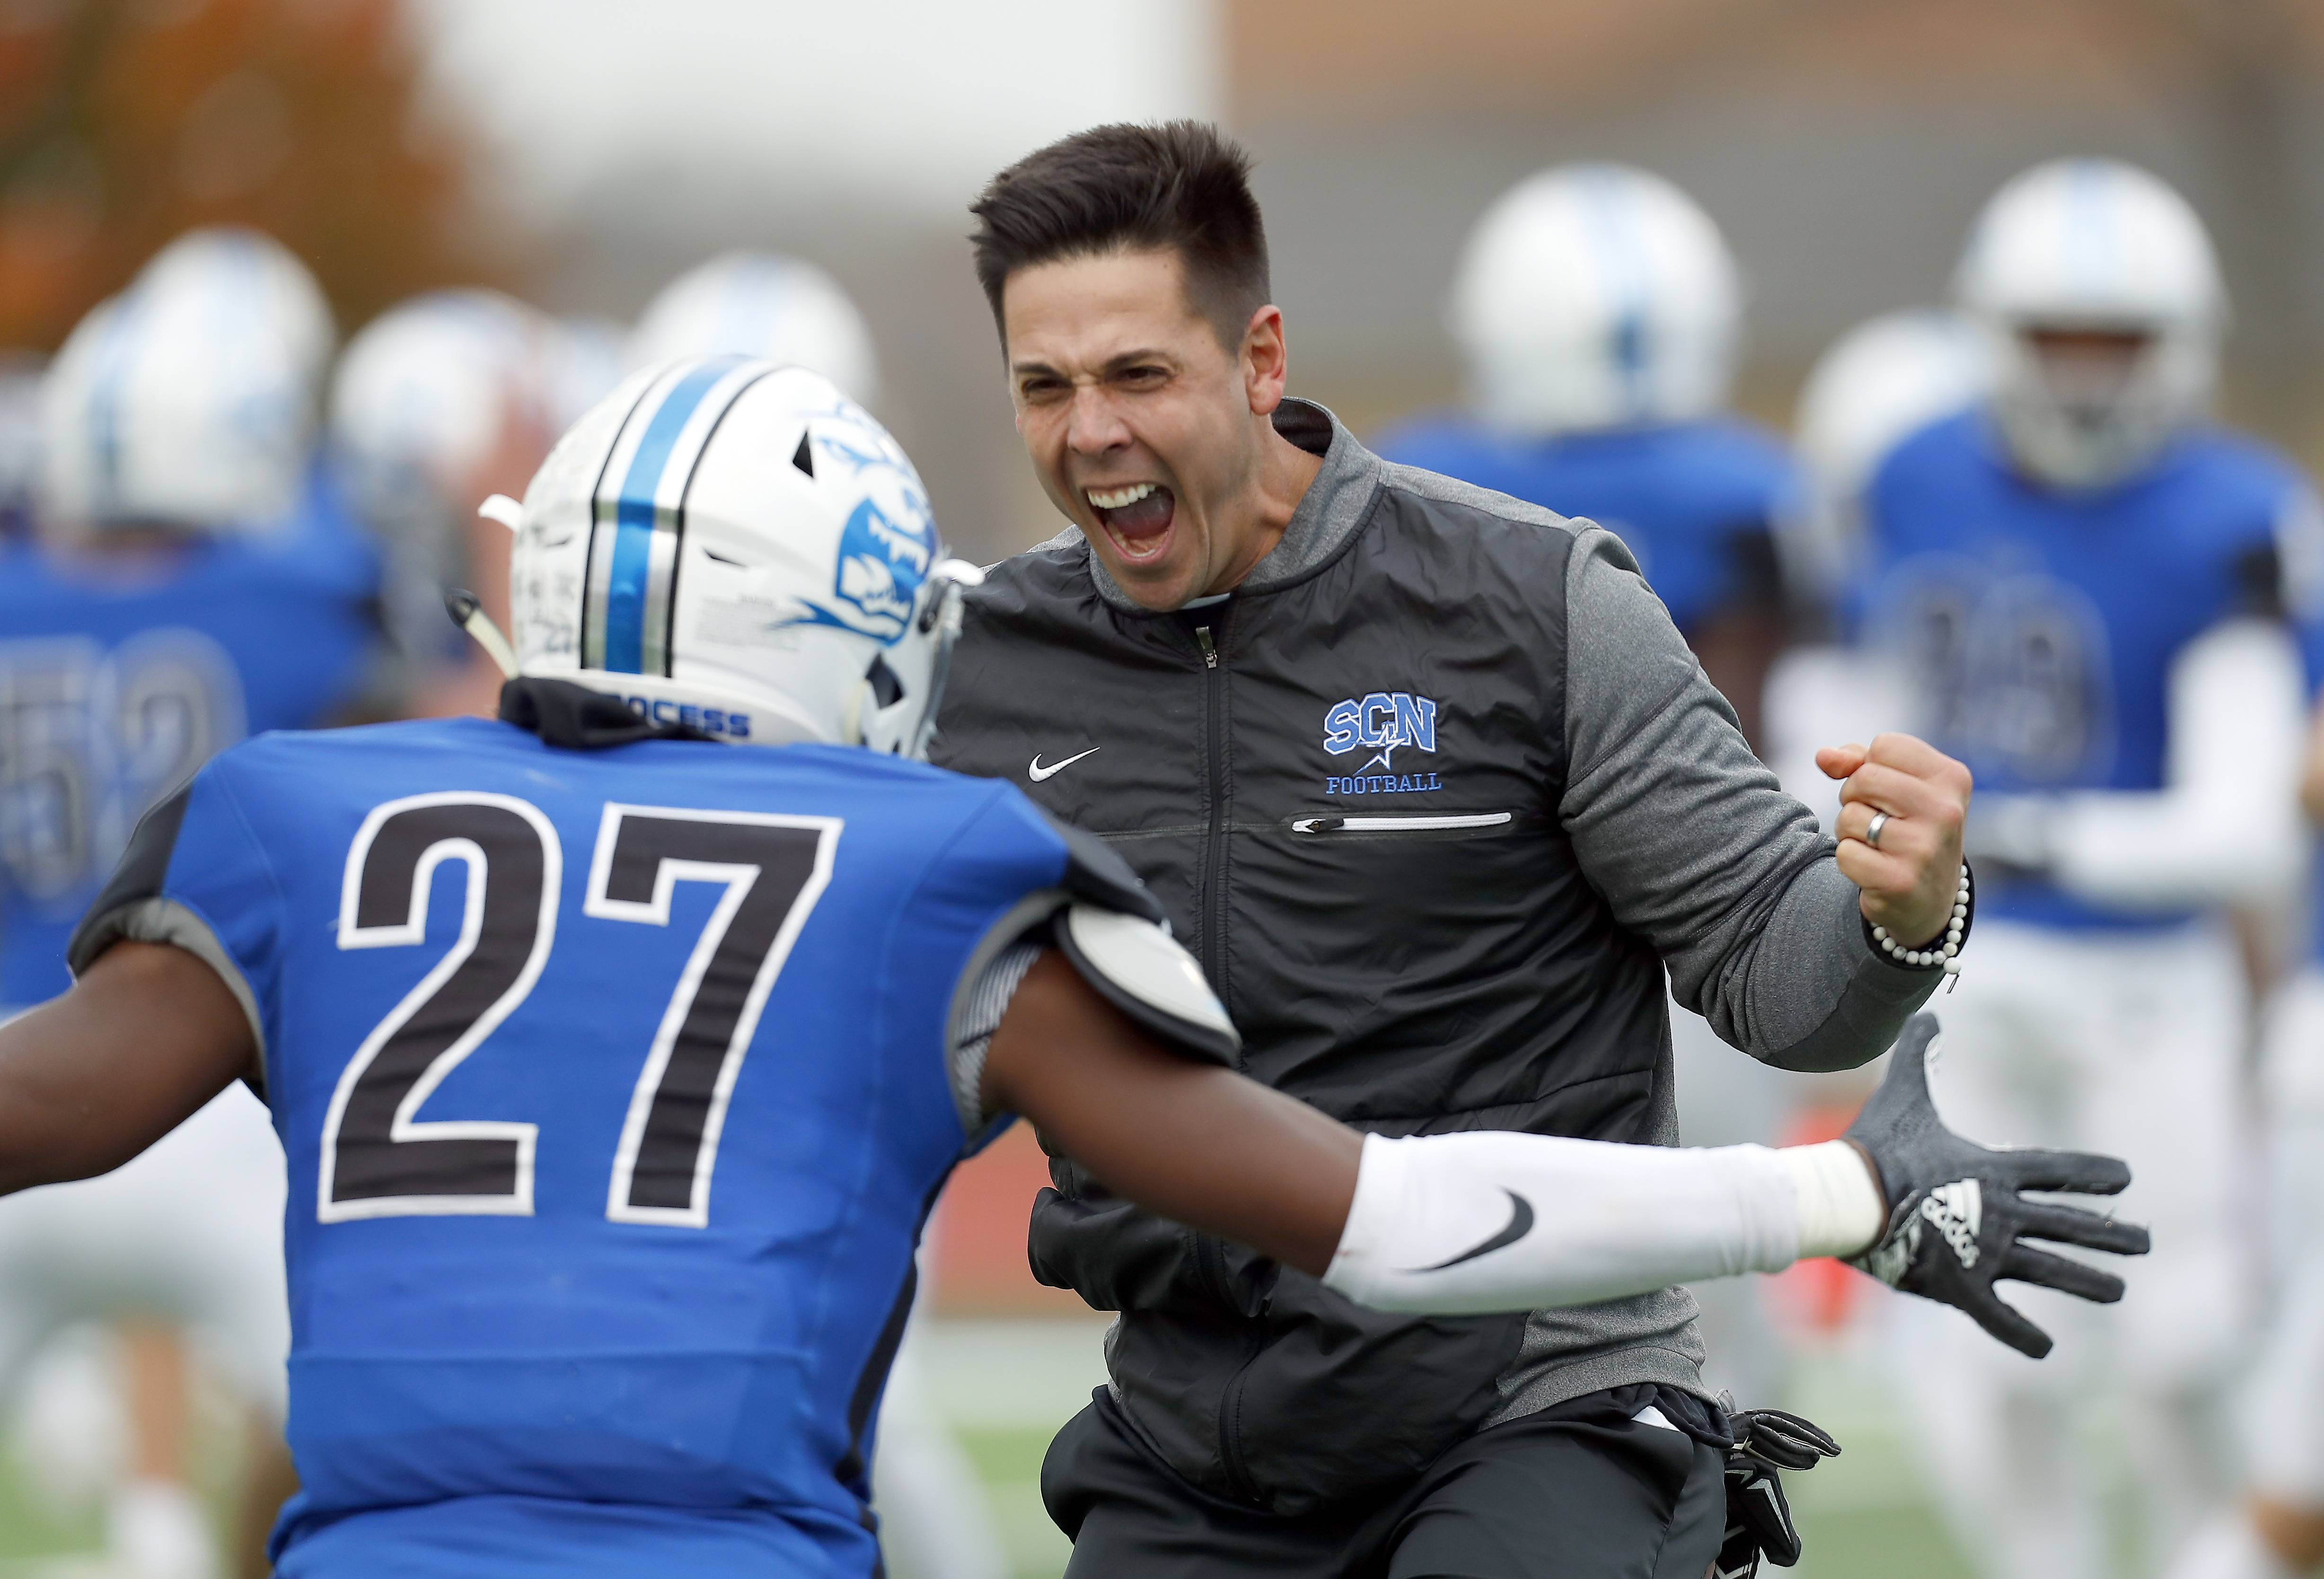 St. Charles North head coach Rob Pomazak and the North Stars' Tyler Nubin (27) celebrate their win Saturday during IHSA Class 7A playoff football in St. Charles.